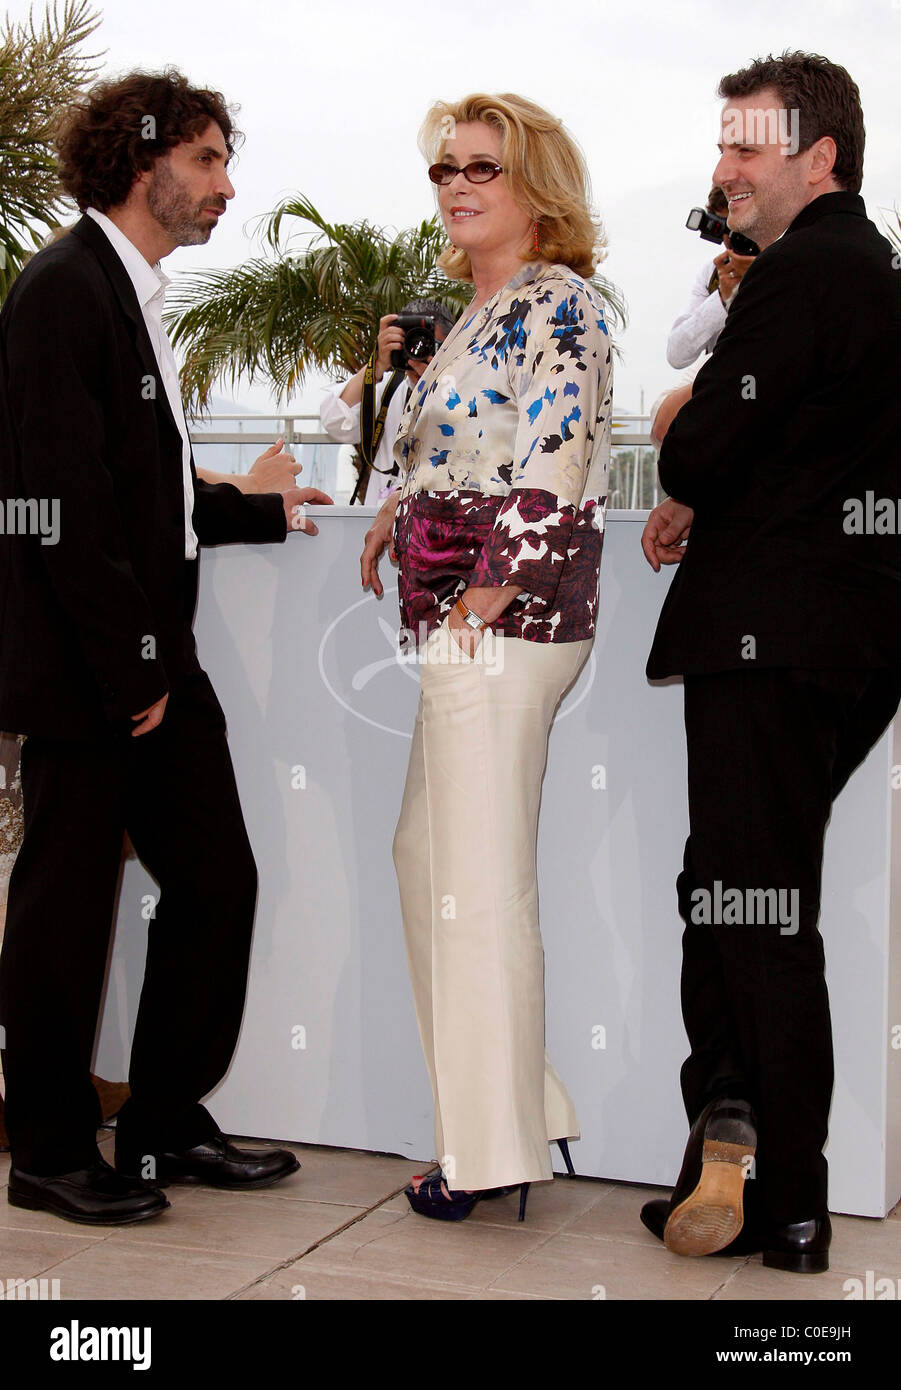 56e33ea99d2 Catherine Deneuve Cannes Film Festival Stock Photos   Catherine ...